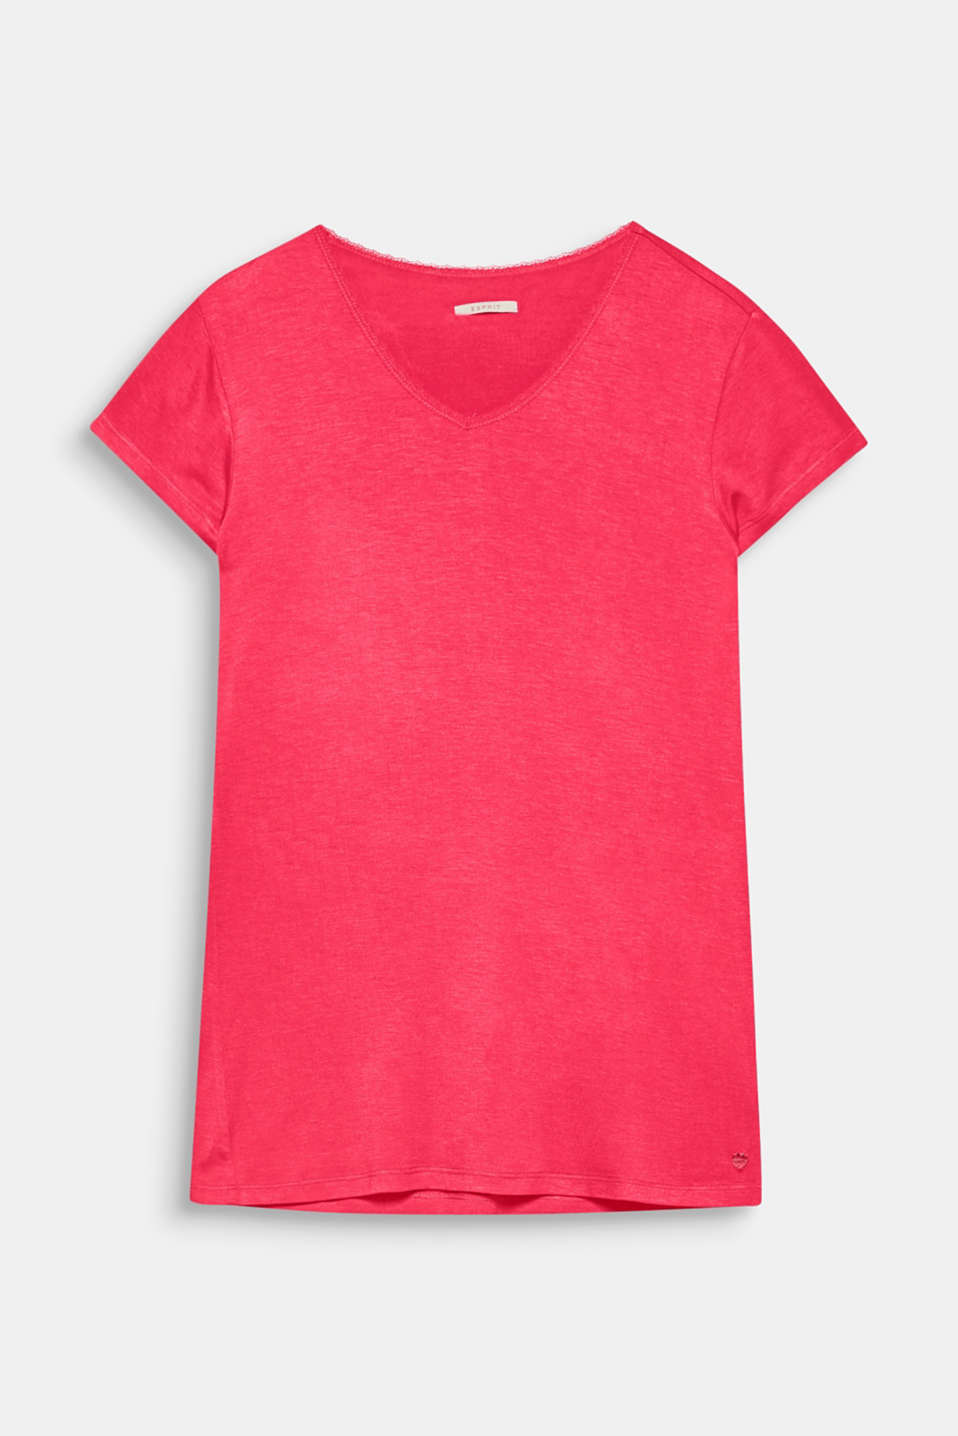 Bedtime highlight: this T-shirt with a lace-embellished V-neck in a fitted cut feels supersoft and light against the skin!